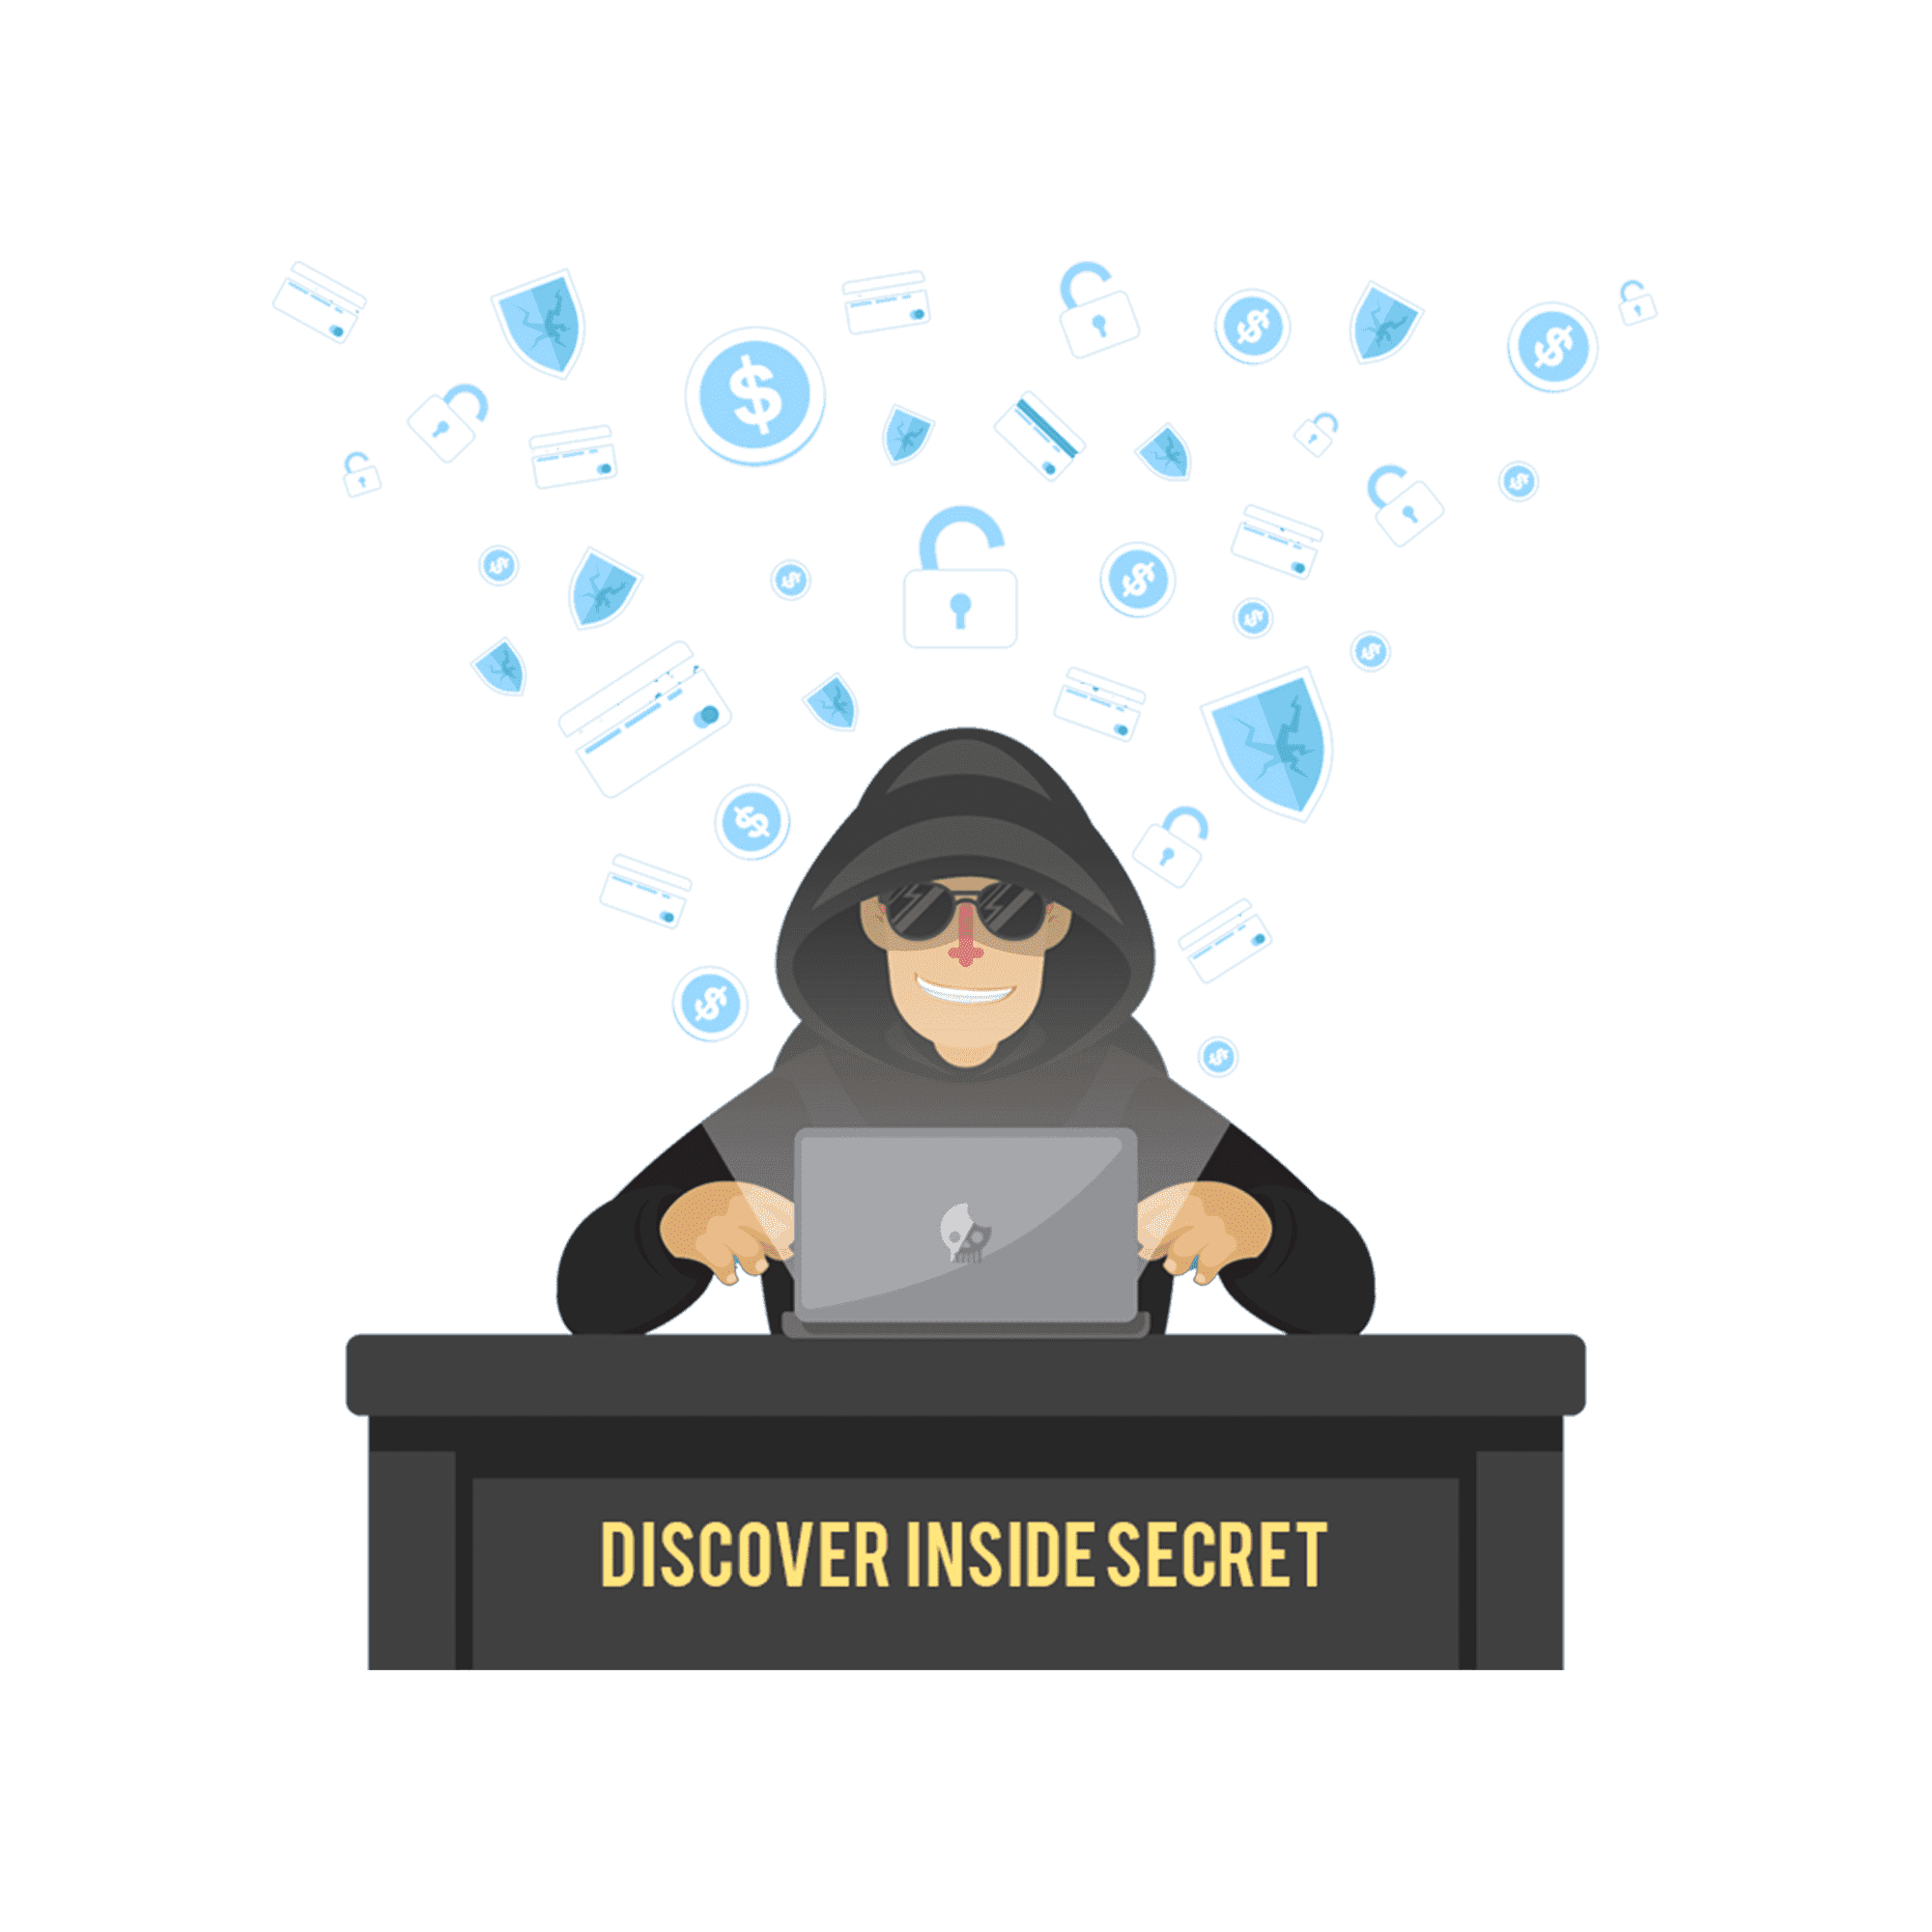 cybersecurity crash course email series